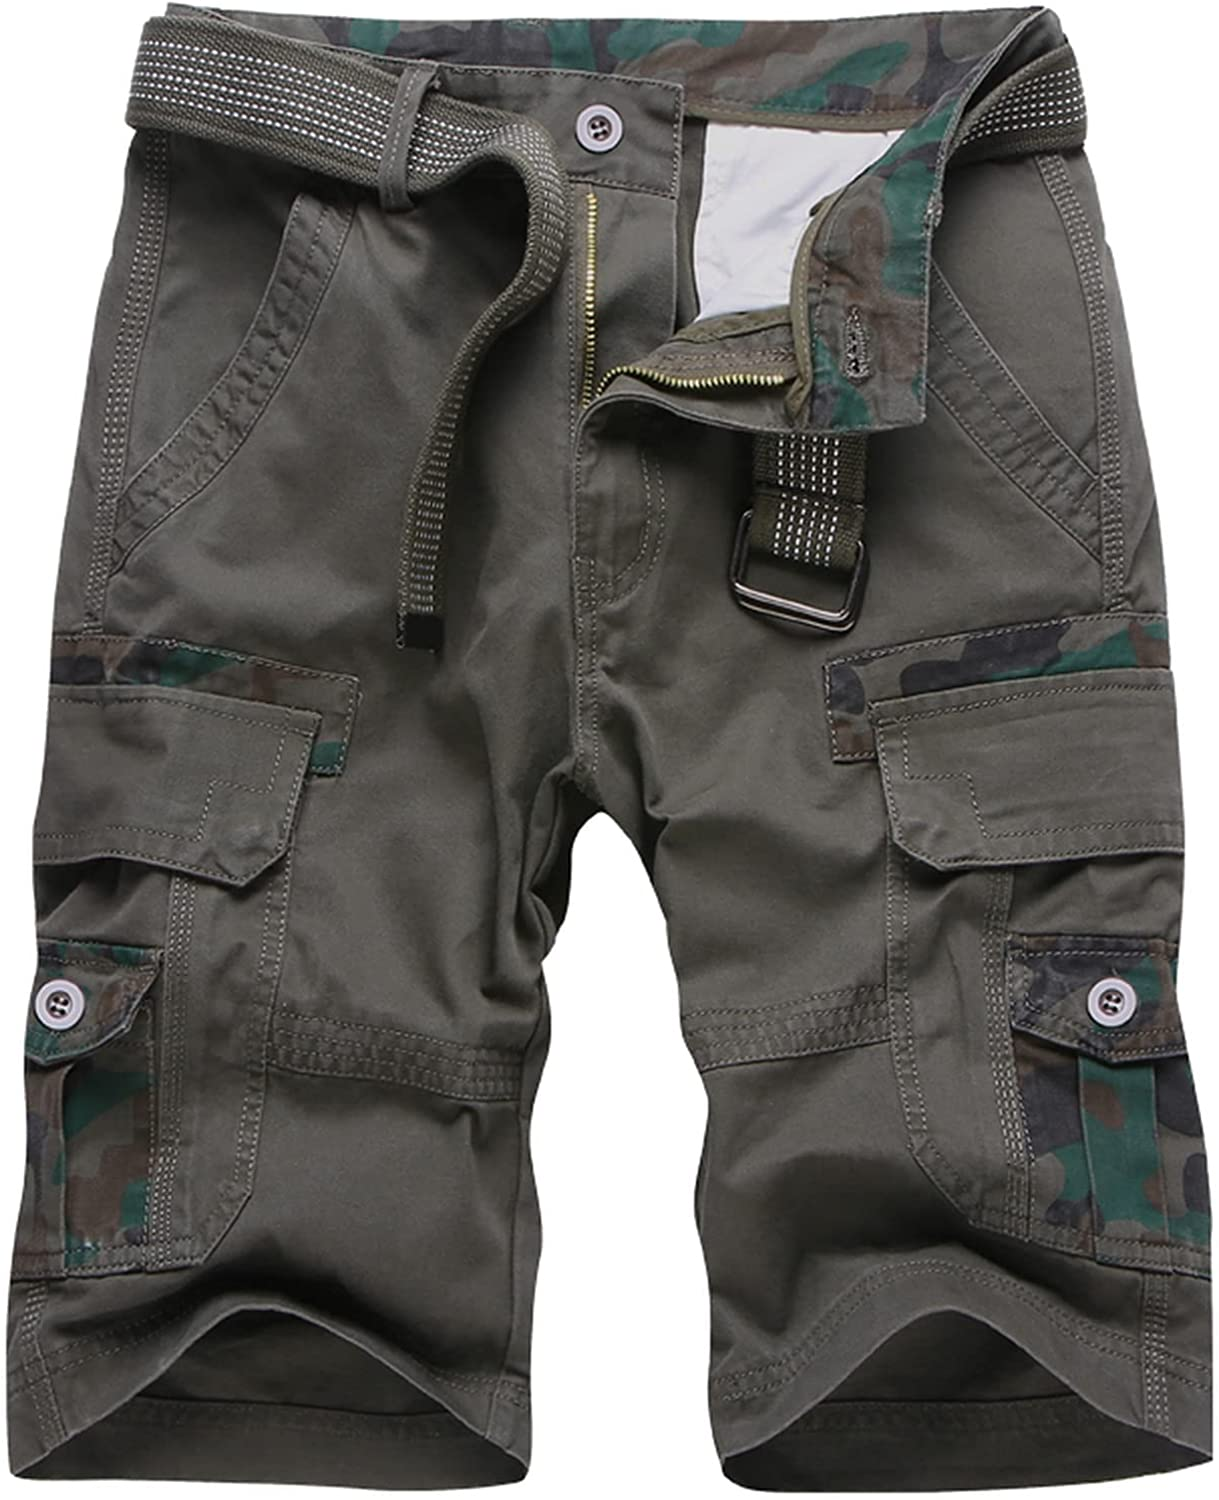 Dellk Men's Shorts Cargo Military Solid Casual Tactical Short Multi Pocket Fitness Loose Work Summer Male 4 Colors Pants